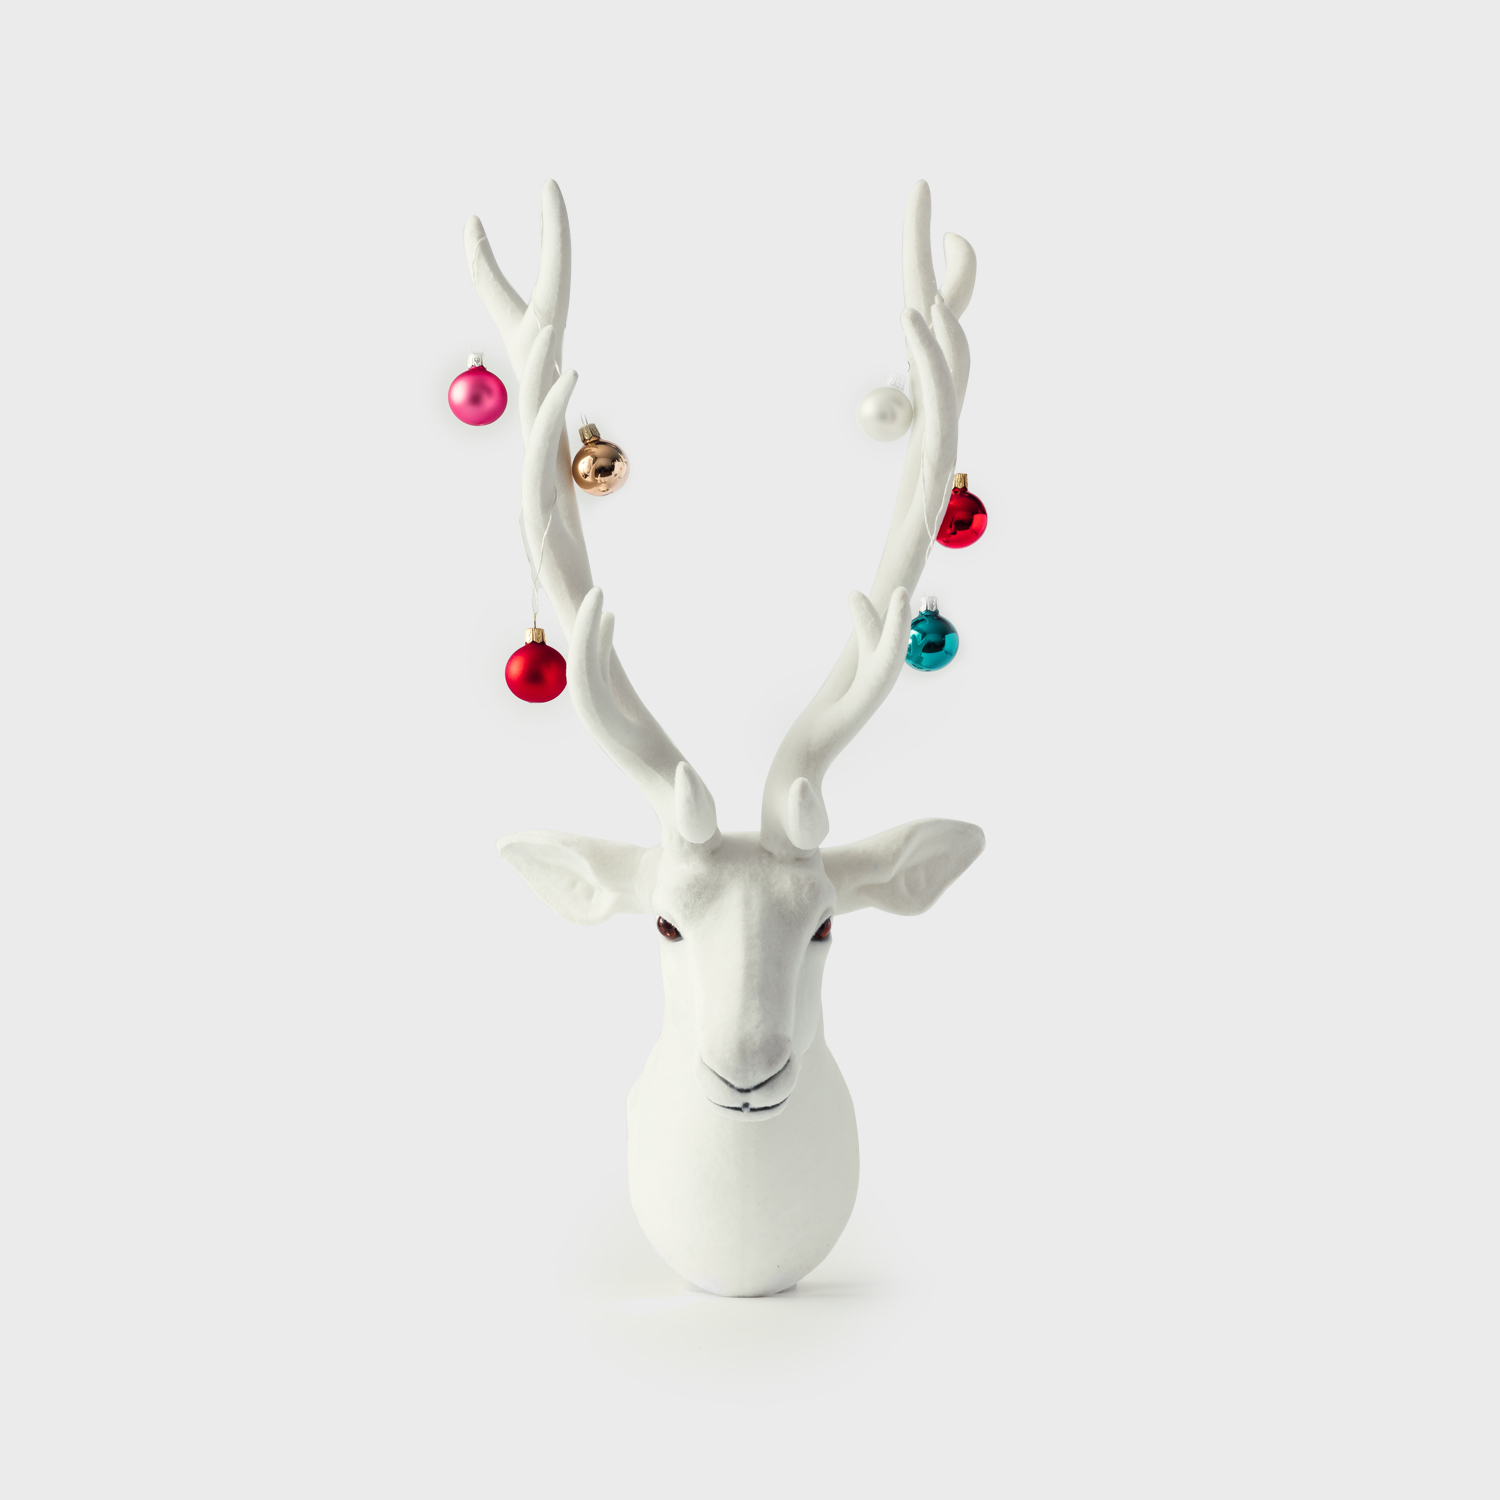 Decorated Antler with Christmas ornaments on his antlers modern desing for home lolio101